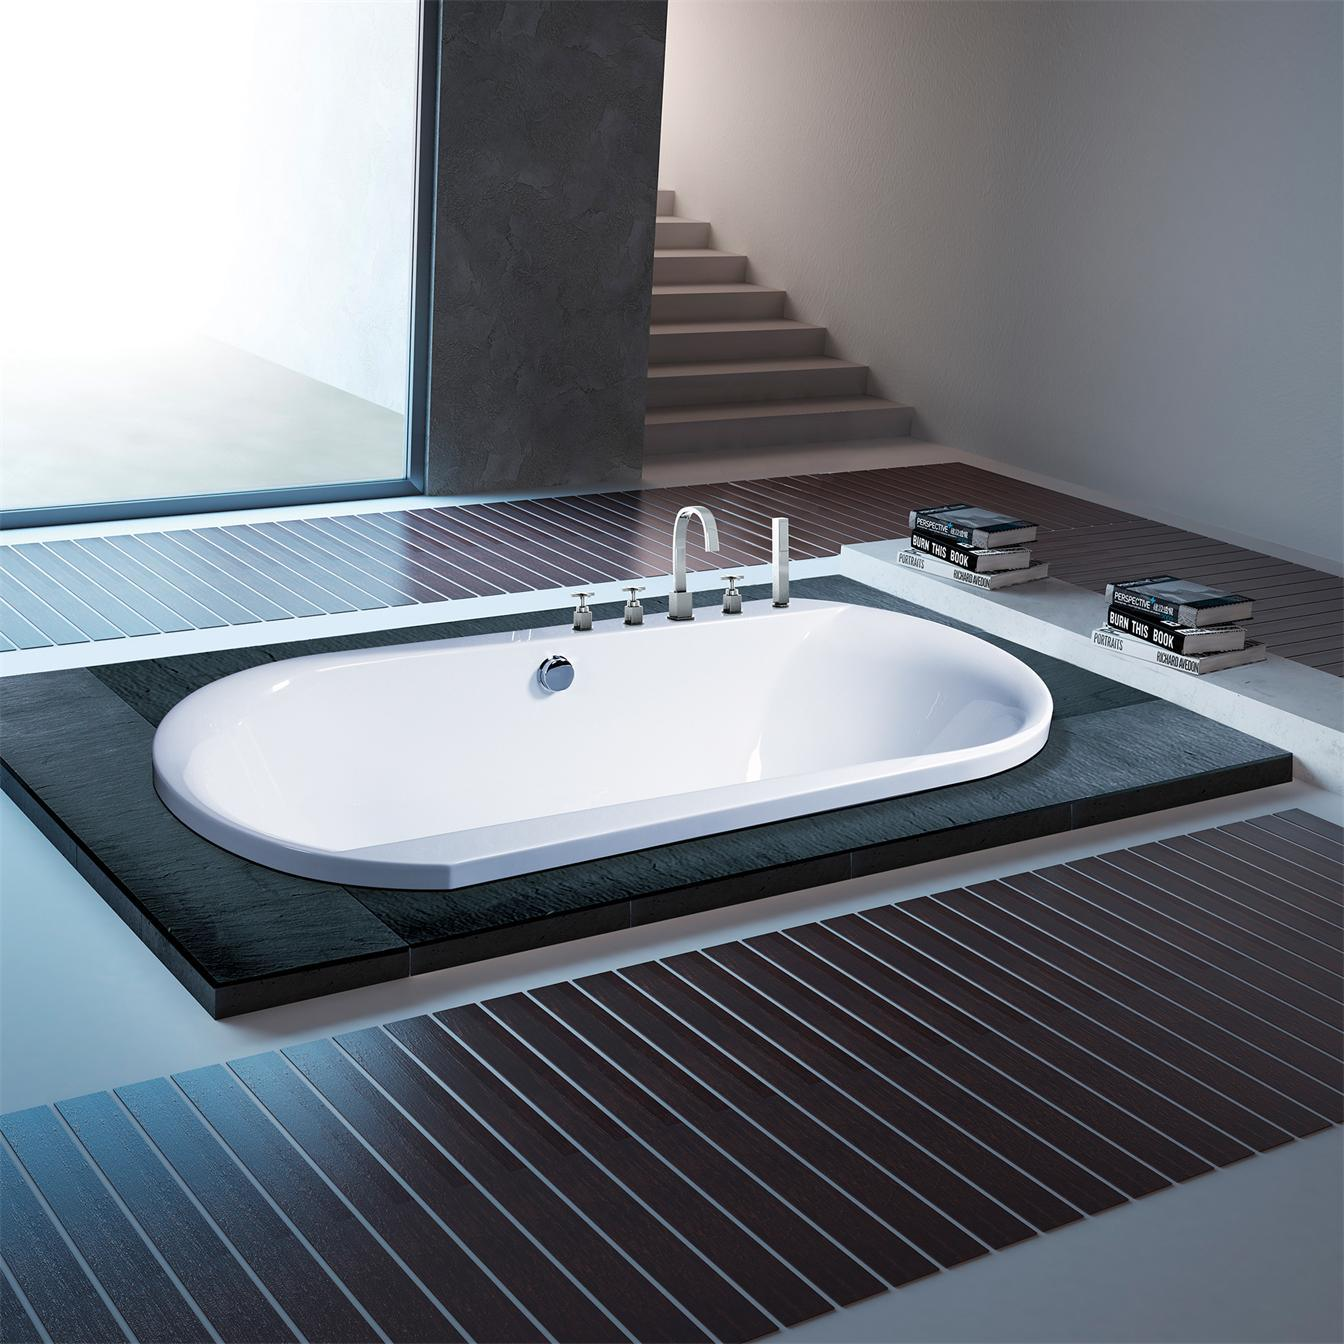 China Double Person White Oval Simple Drop-in Bath Tub B-638 - China ...